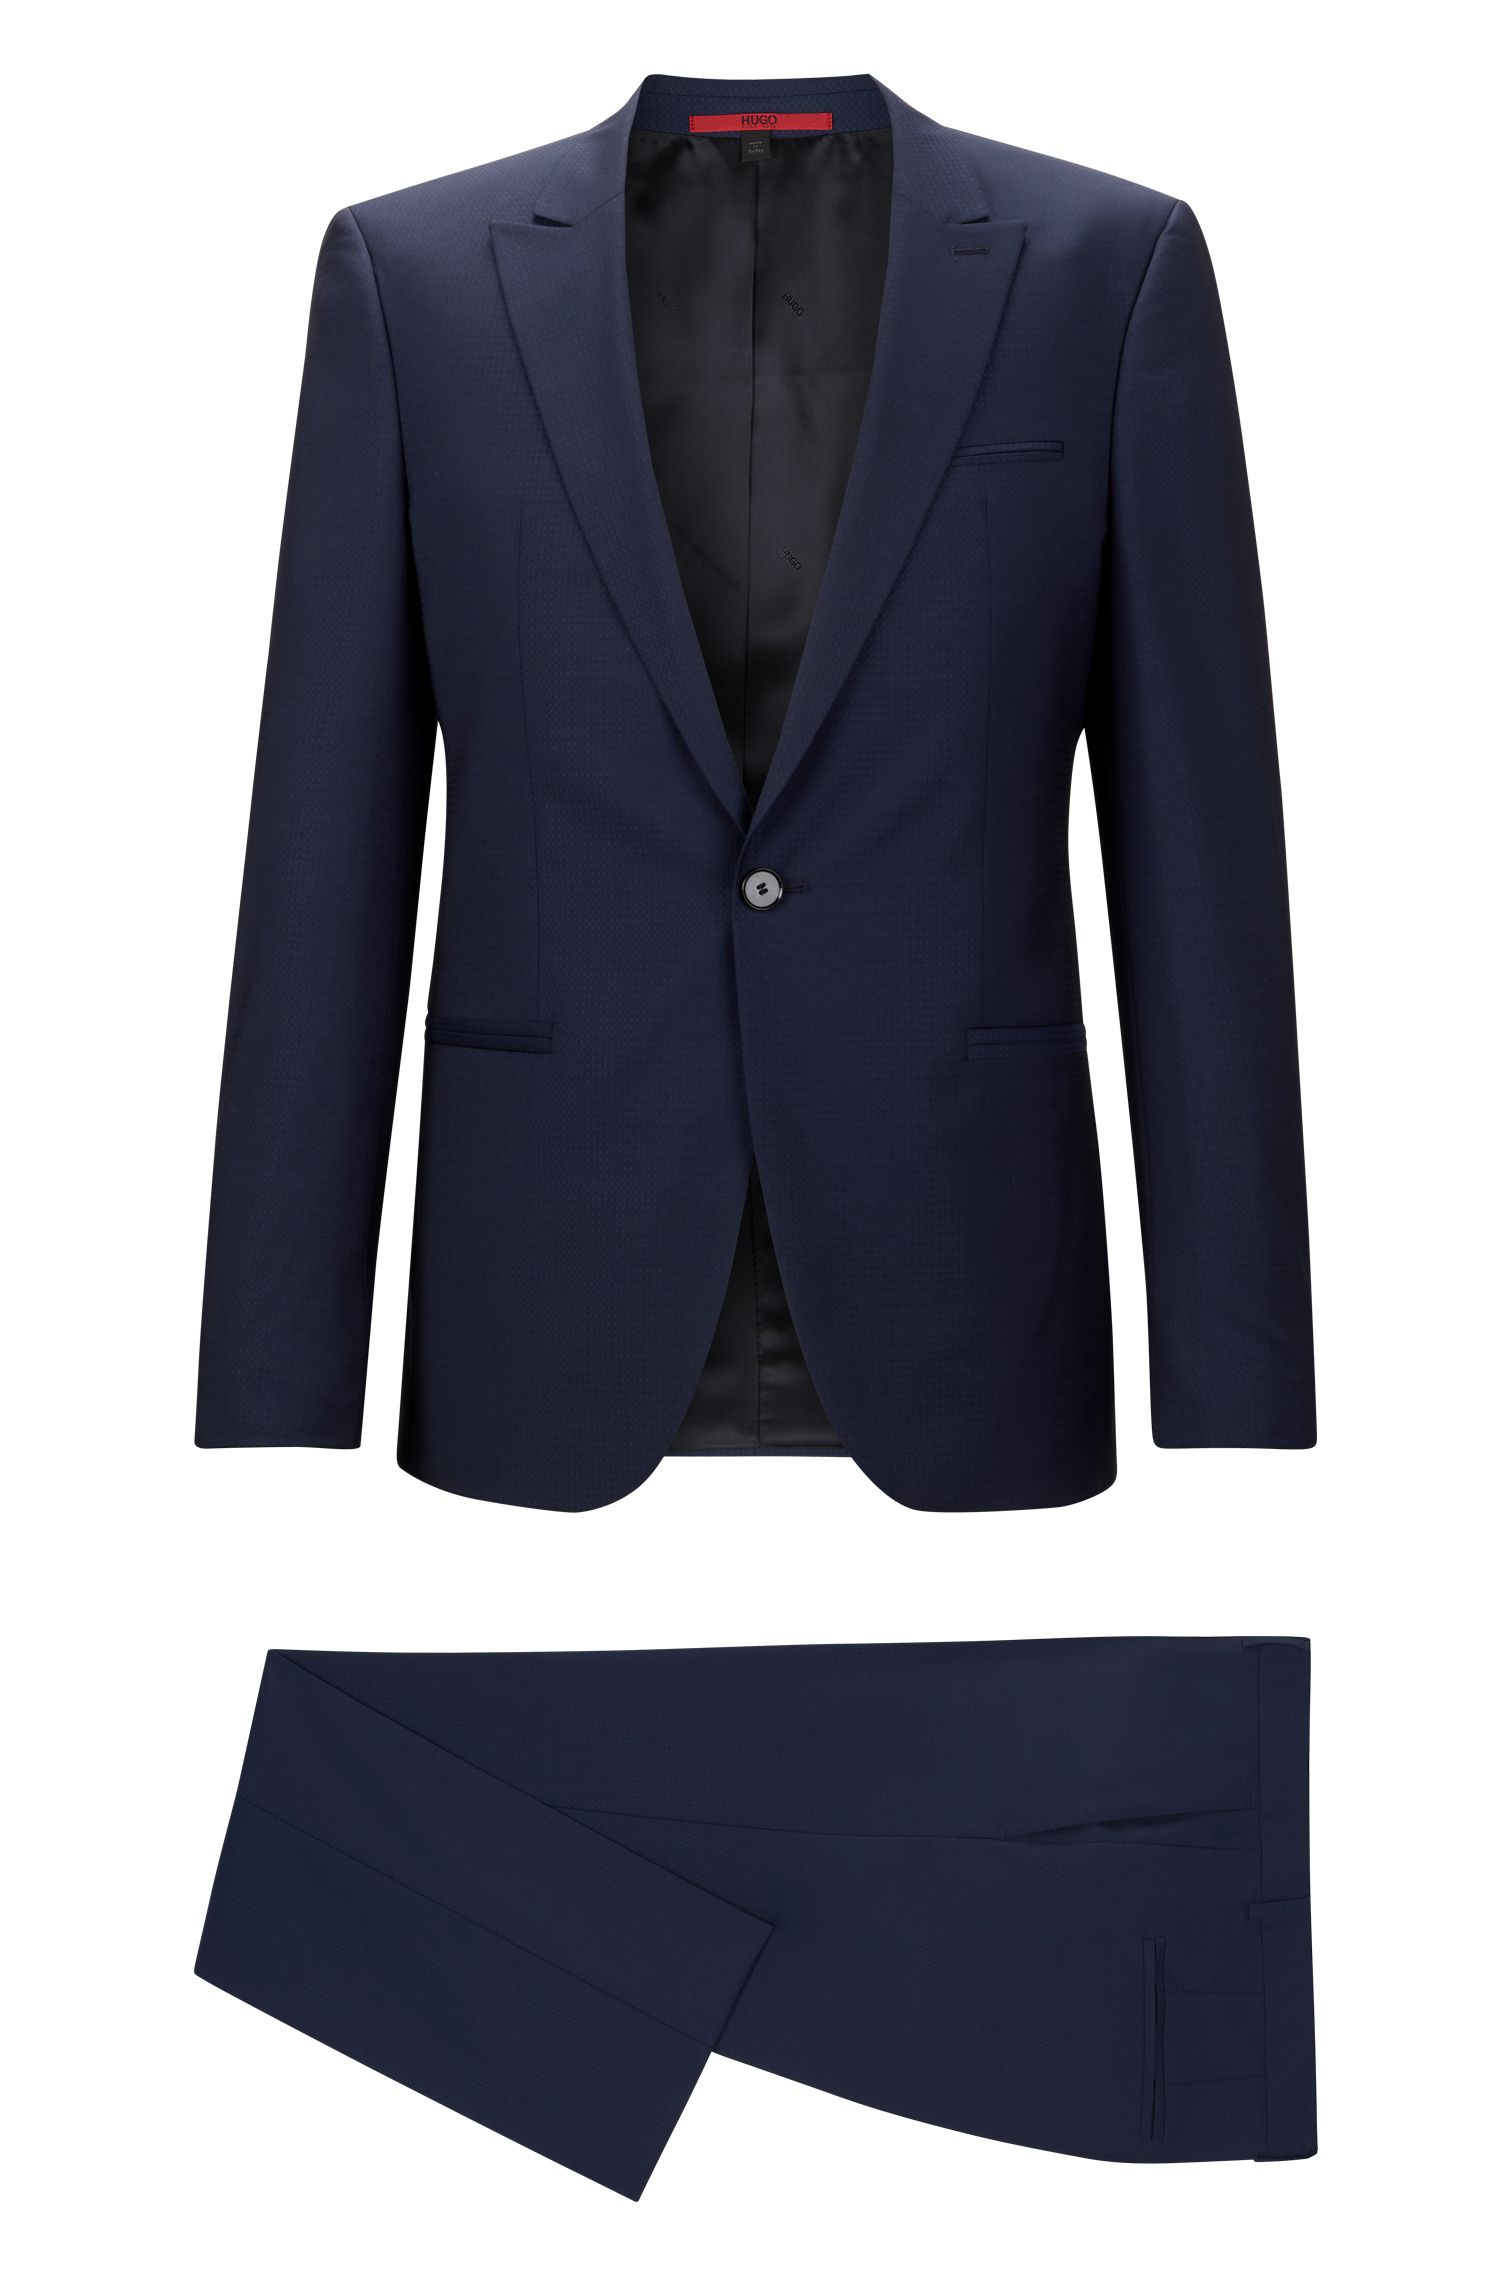 'Adgin/Hiels' | Slim Fit, Jacquard Italian Super 120 Virgin Wool Suit